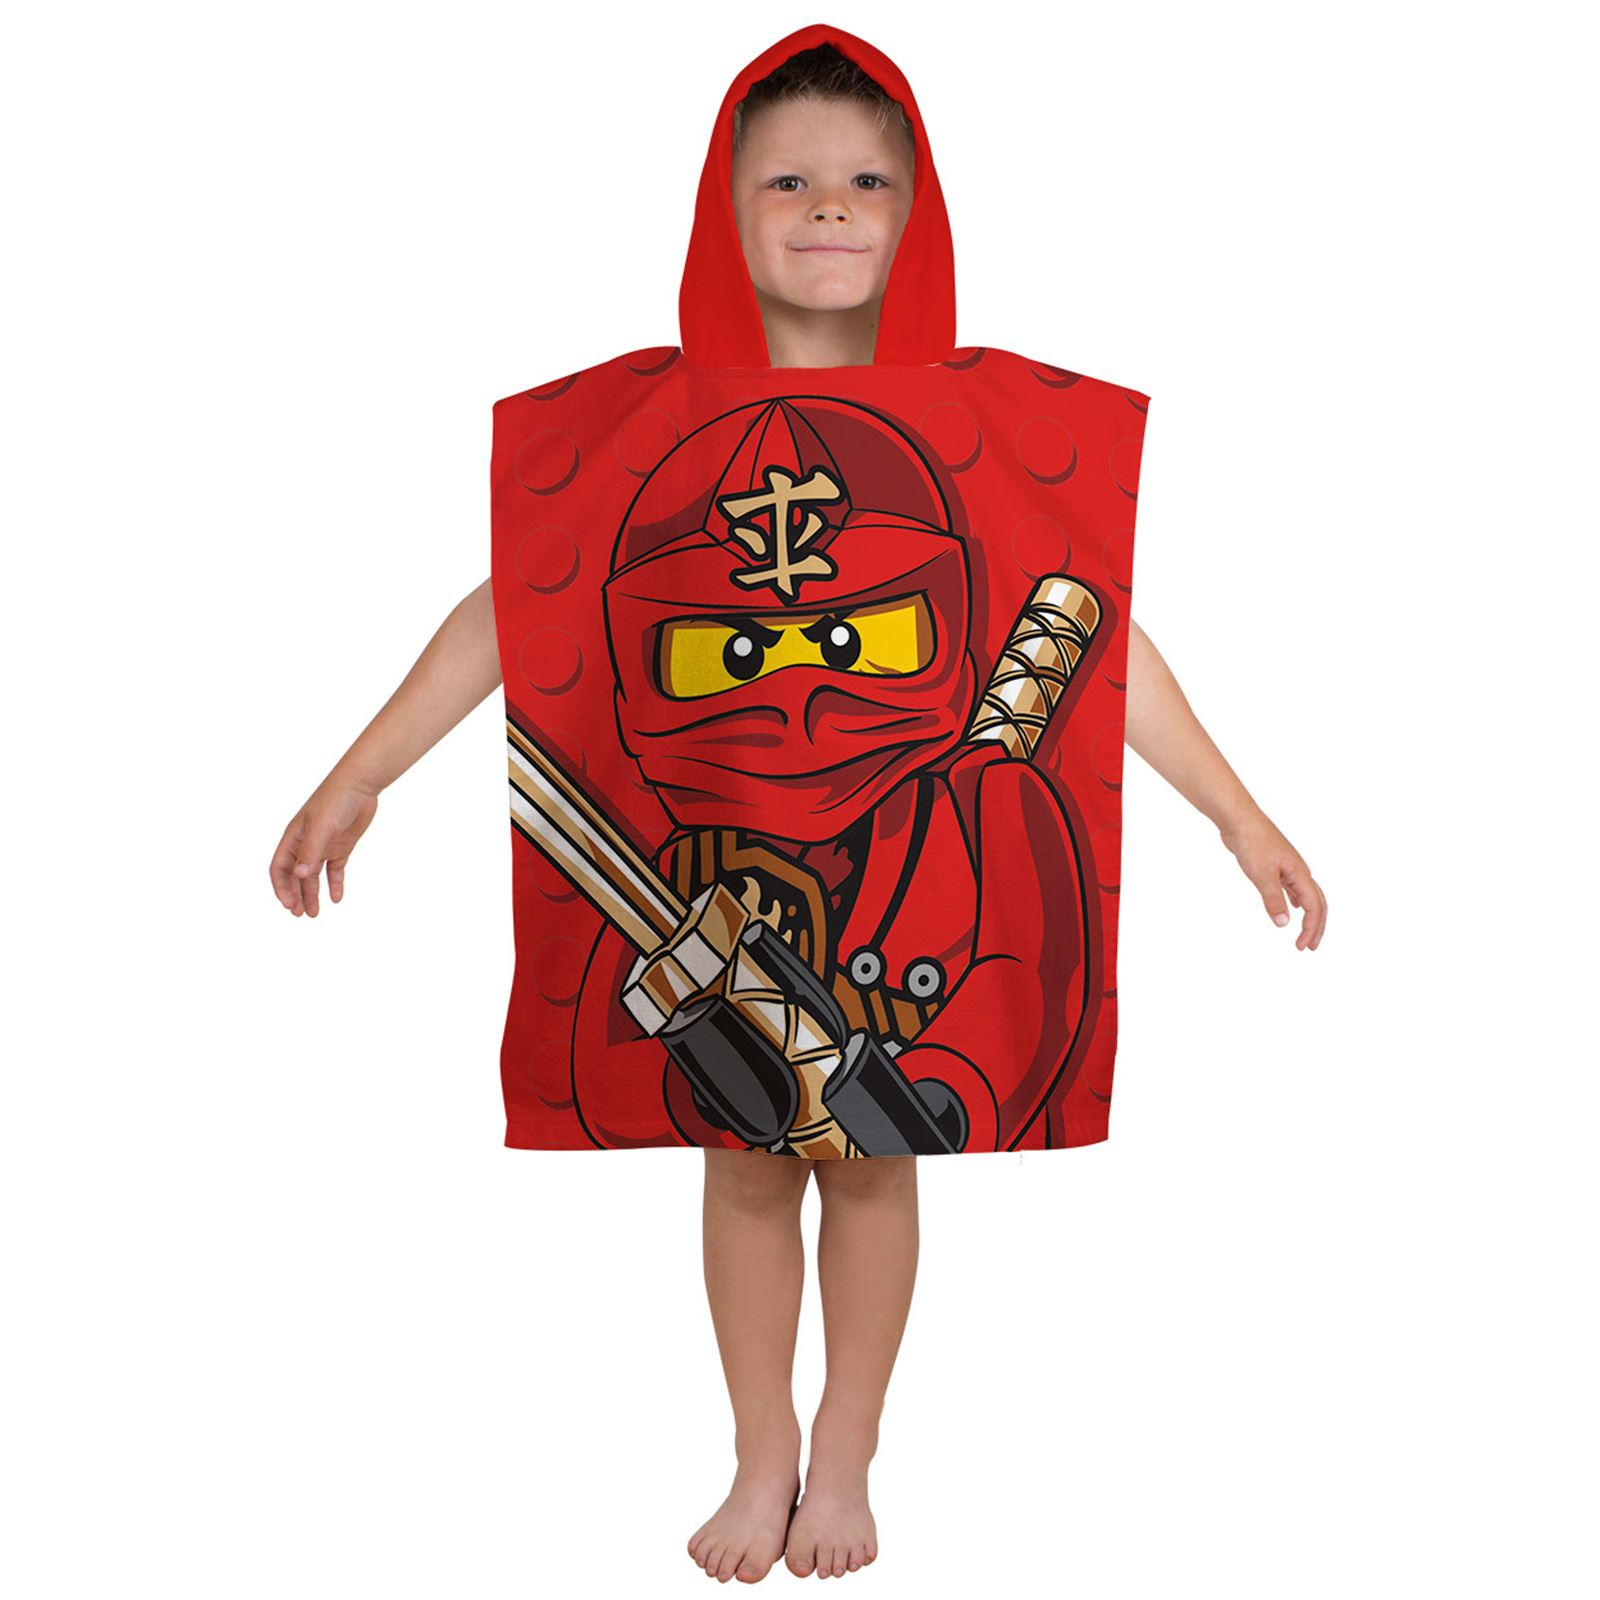 offiziell lego ninjago warrior kapuzen poncho handtuch rot kinder baumwolle ebay. Black Bedroom Furniture Sets. Home Design Ideas